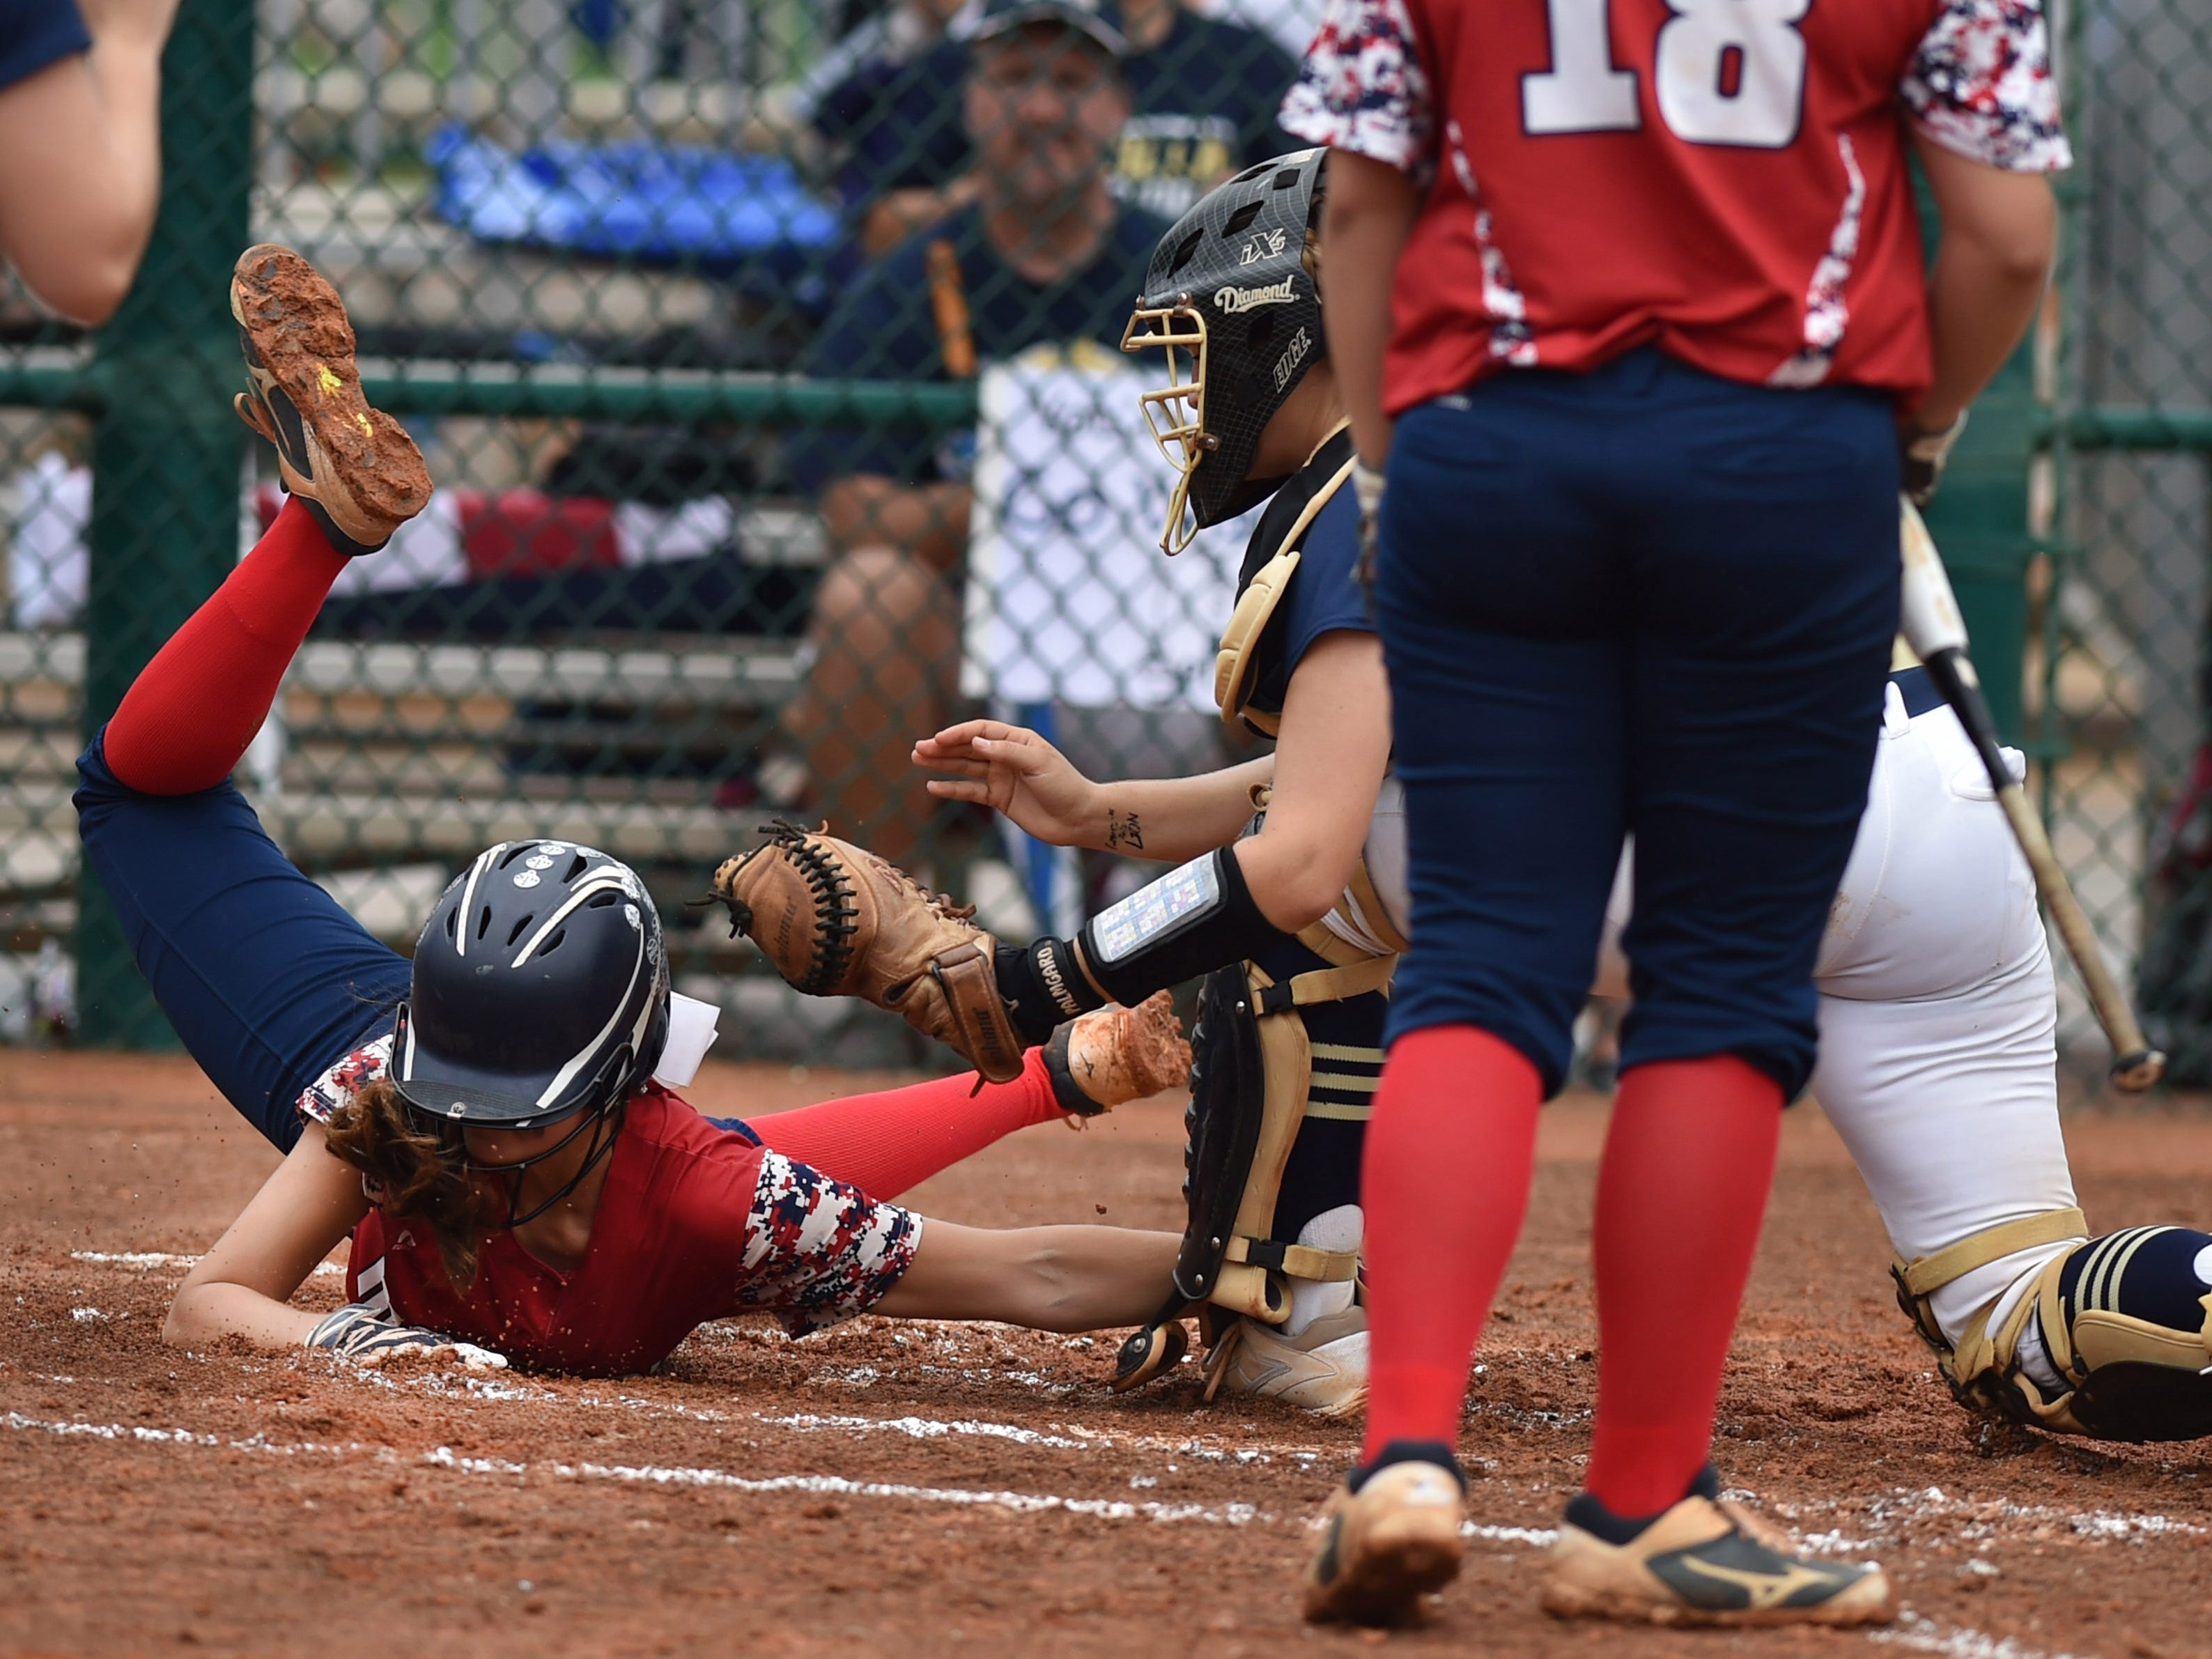 Halle Morgan, of Masers Academy, is tagged out by Kaylie Rogers, catcher for Aucilla Christian, while trying to steal home in the top of the third inning of their Class 2A state semifinal game at Historic Dodgertown on Monday, May 21, 2018, in Vero Beach.